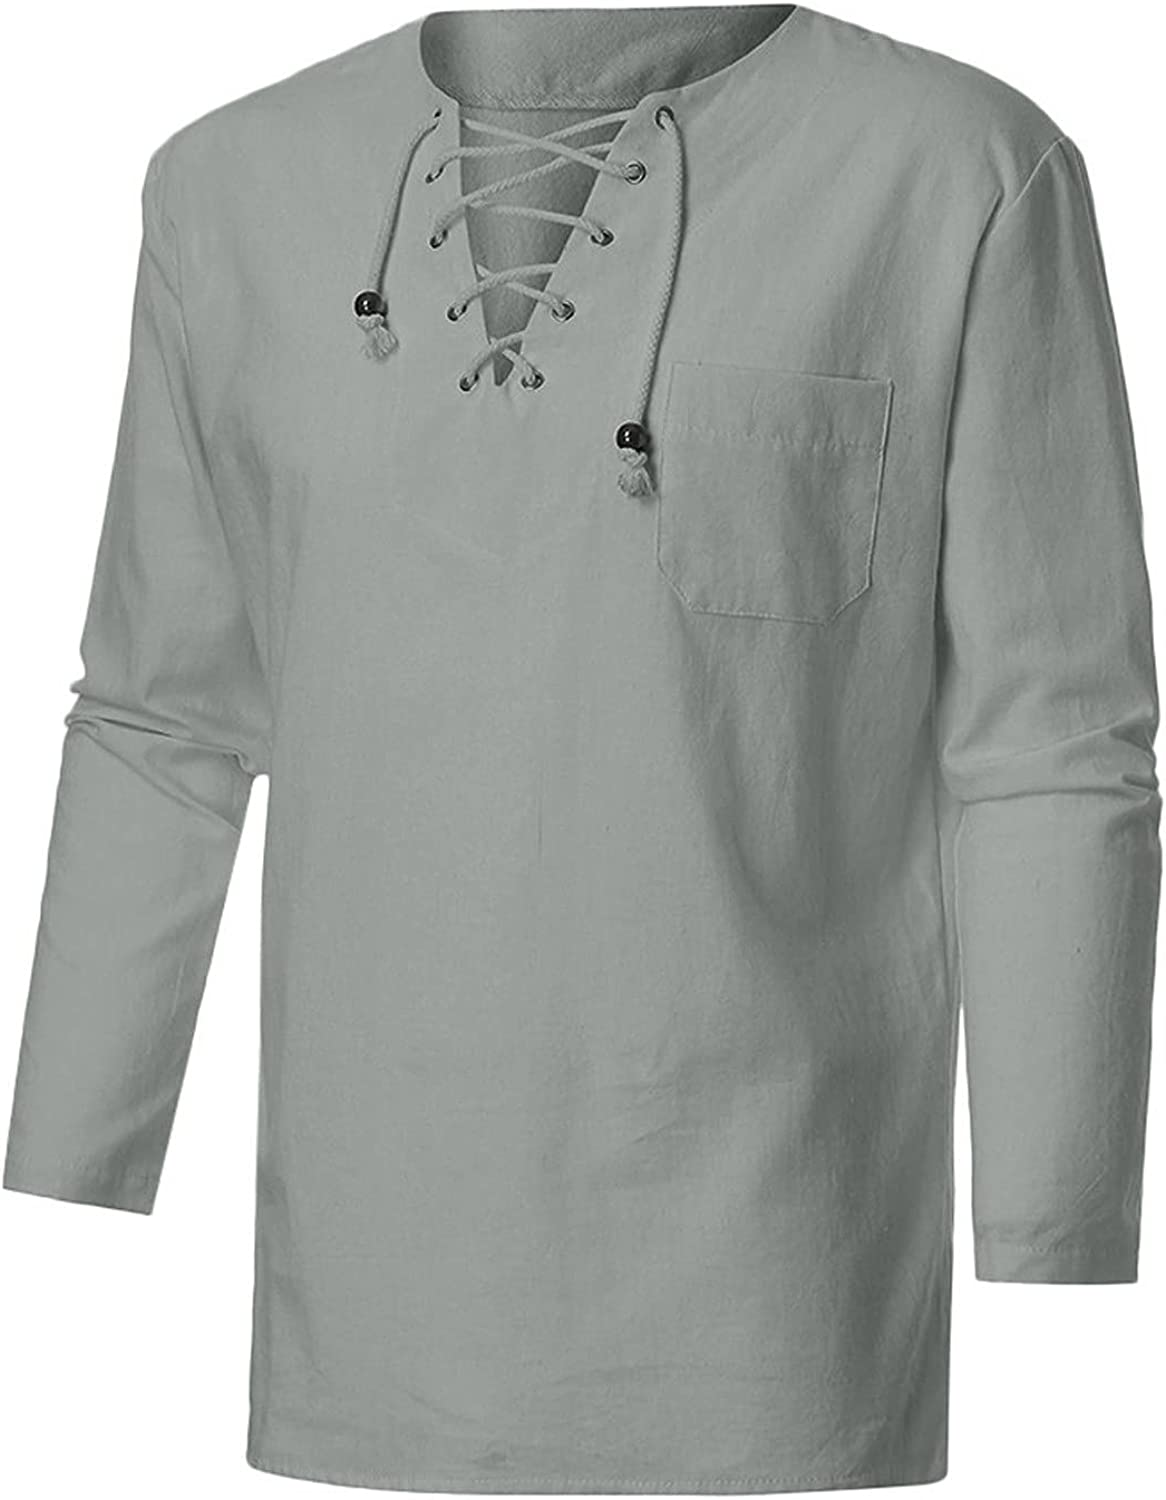 LEIYAN Mens Casual Cotton Linen Shirts Spring Summer Long Sleeve Big and Tall Hippie V-Neck Loose Fit Beach Yoga Tops